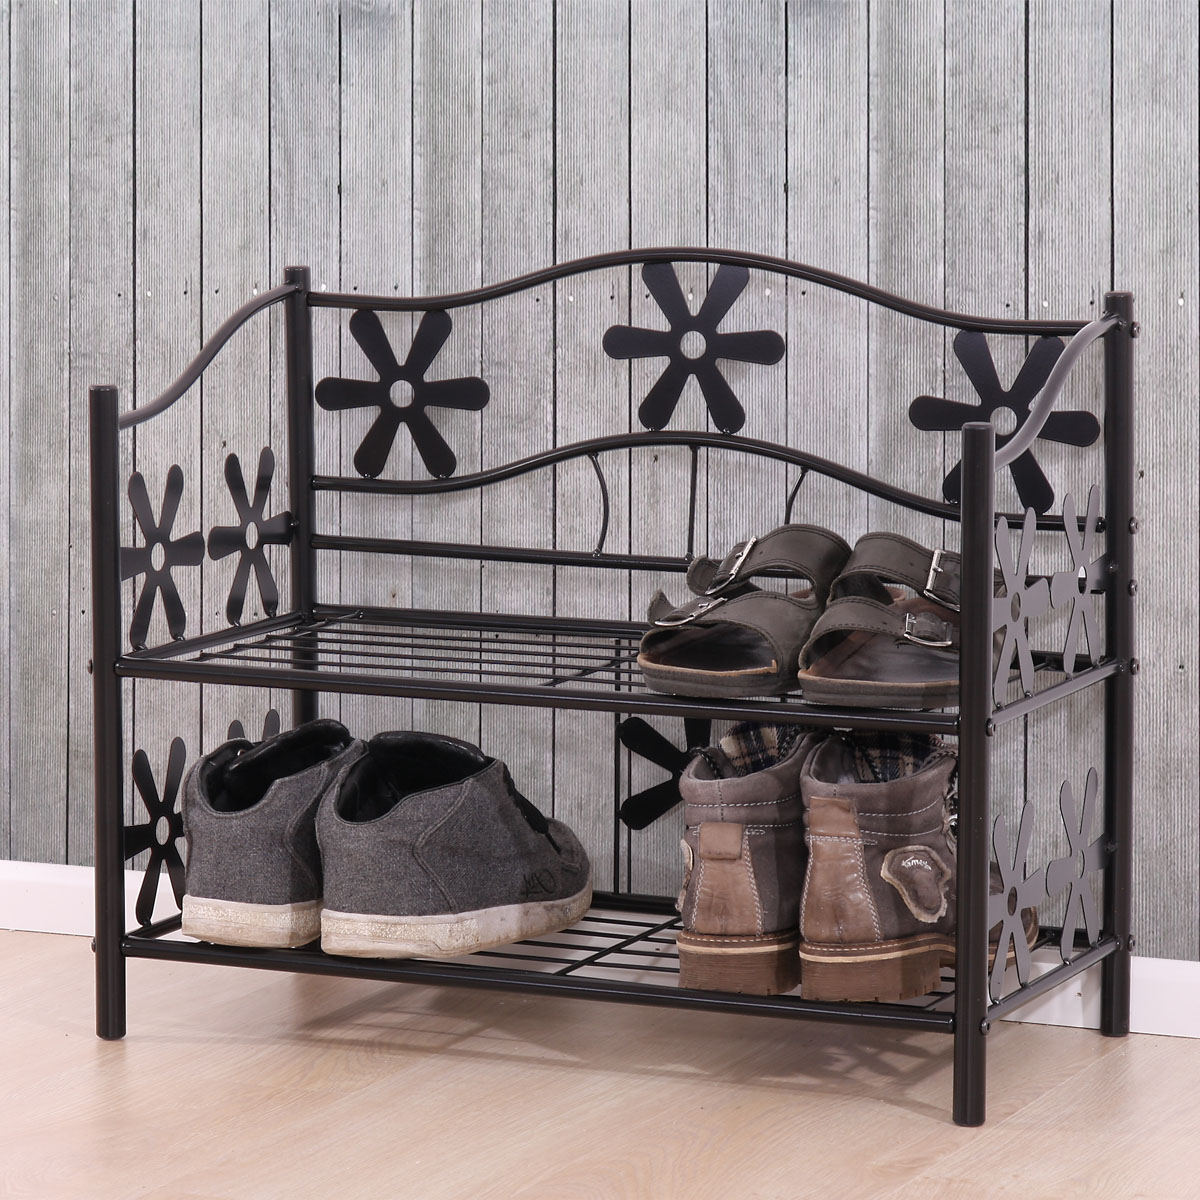 regal metall b cherregal schuhregal standregal genf 2 b den h he 50cm. Black Bedroom Furniture Sets. Home Design Ideas